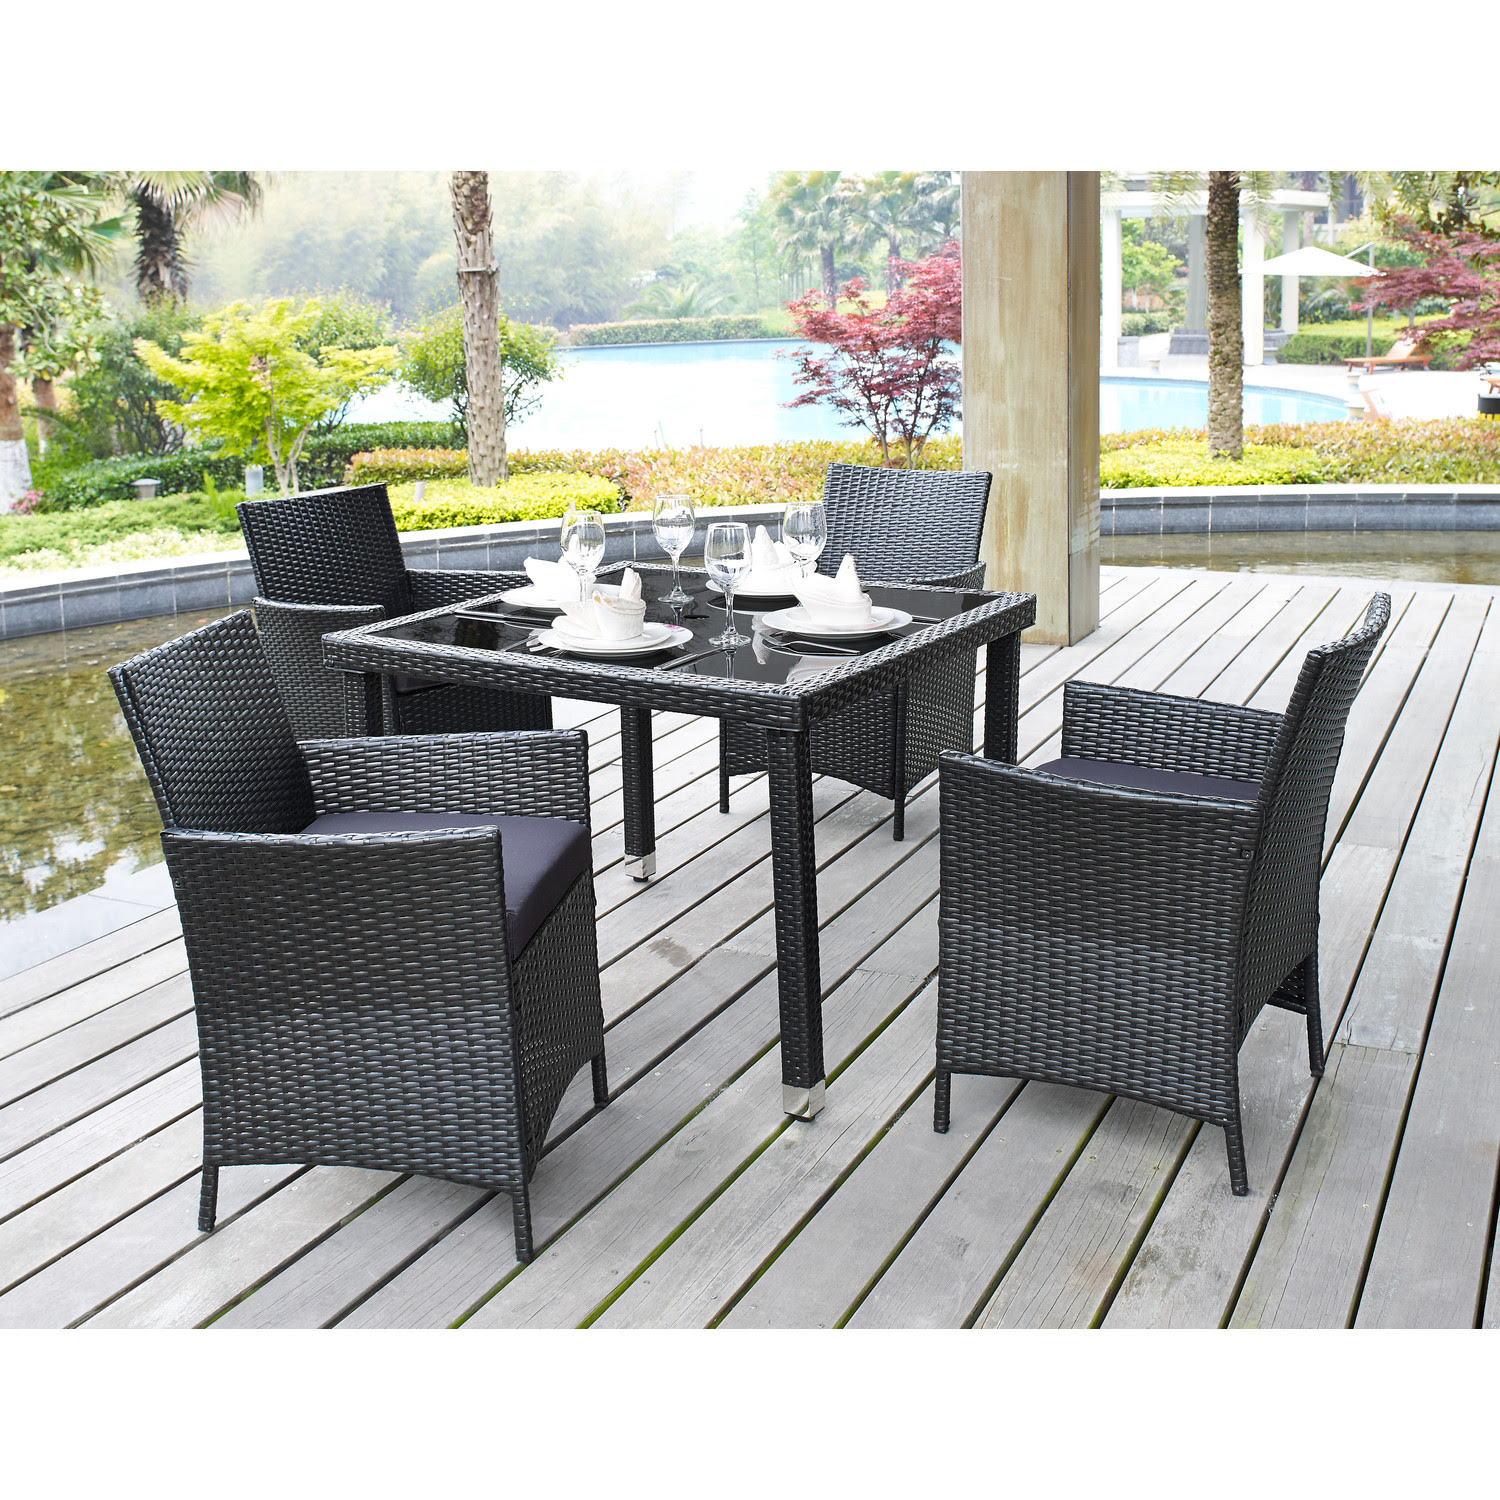 Places To Go For Affordable Modern Outdoor Furniture ...